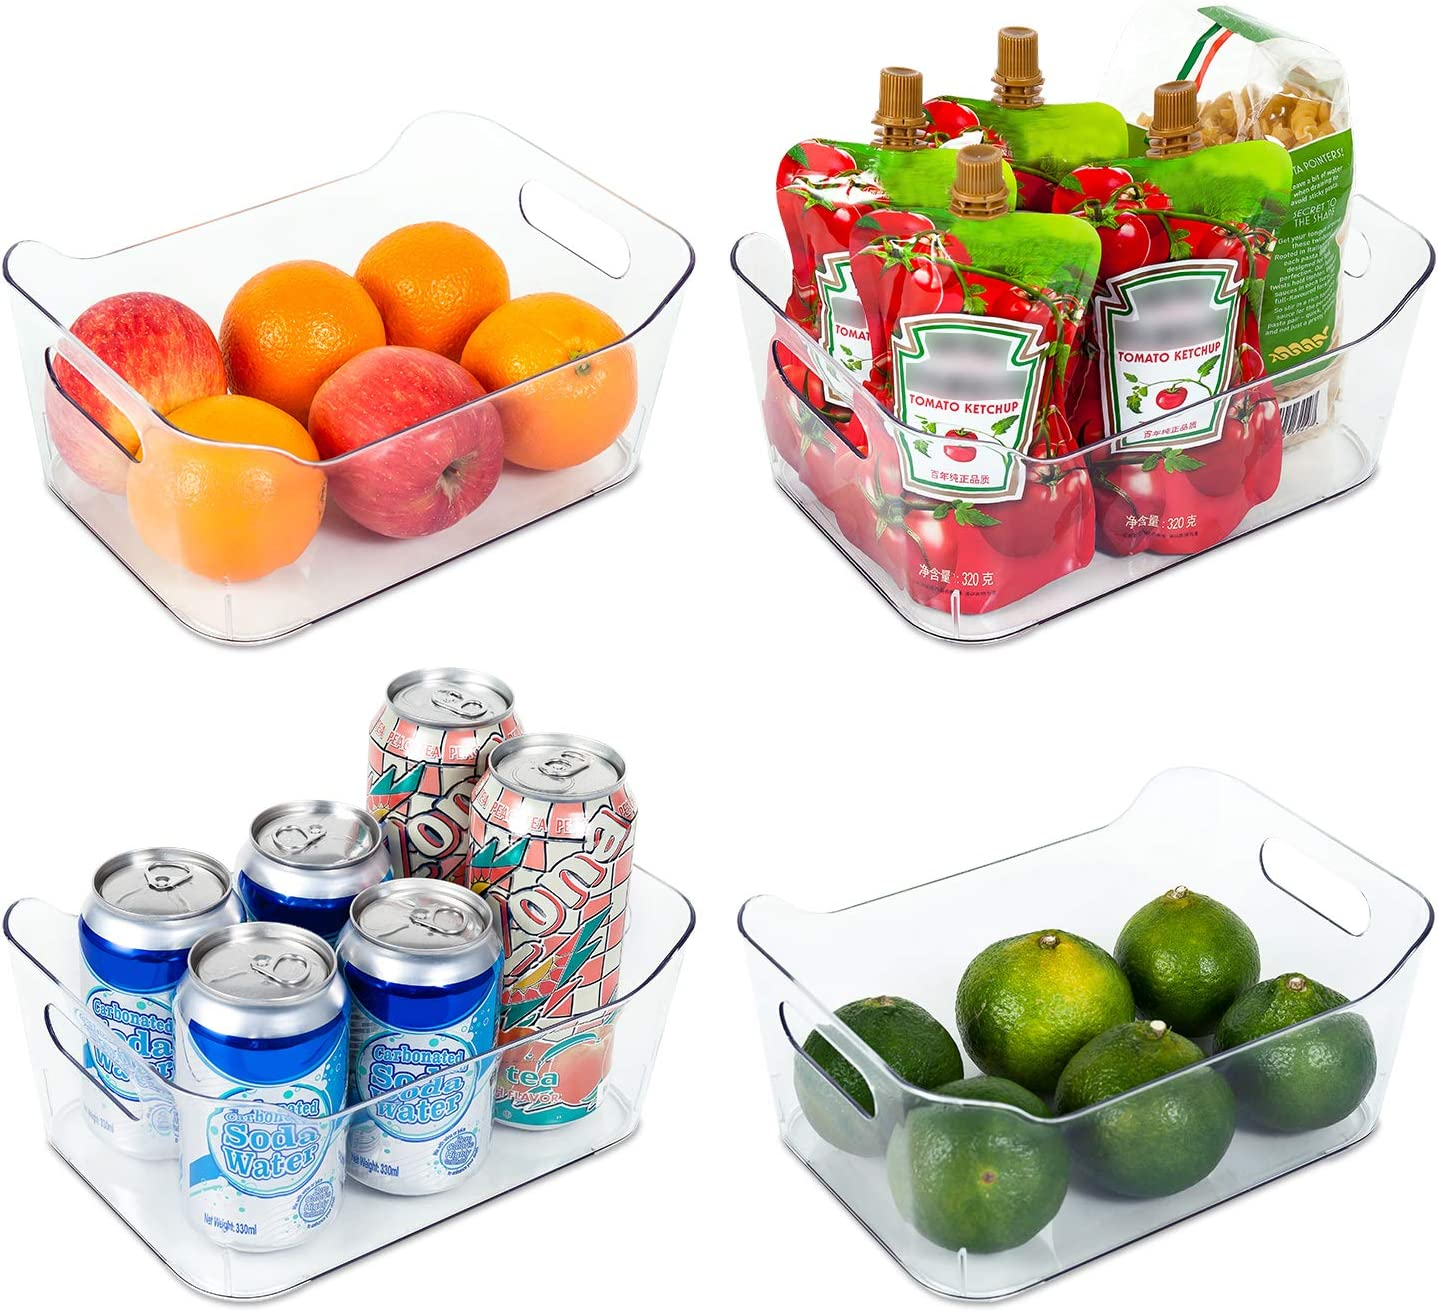 "Vtopmart Refrigerator Organizer Bins 4 Pack - Clear Small Plastic Food Organizer with Handle for Fridge, Freezer, Cabinet, Kitchen Pantry Organization and Storage, BPA Free, 9.5"" Long"